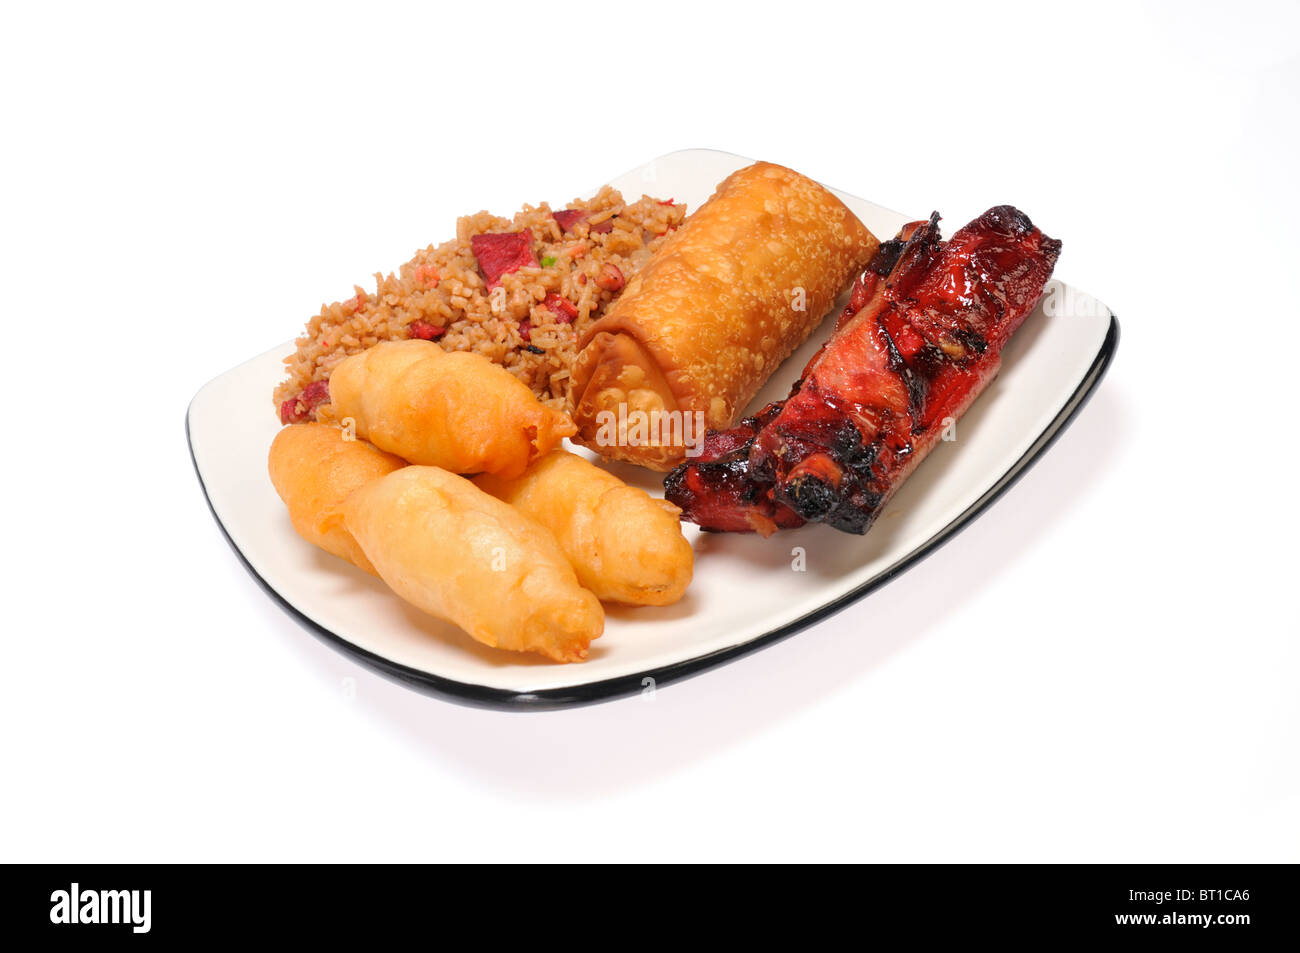 Chinese food dinner of pork fried rice, chicken fingers, spareribs and eggroll on white plate on white background. - Stock Image